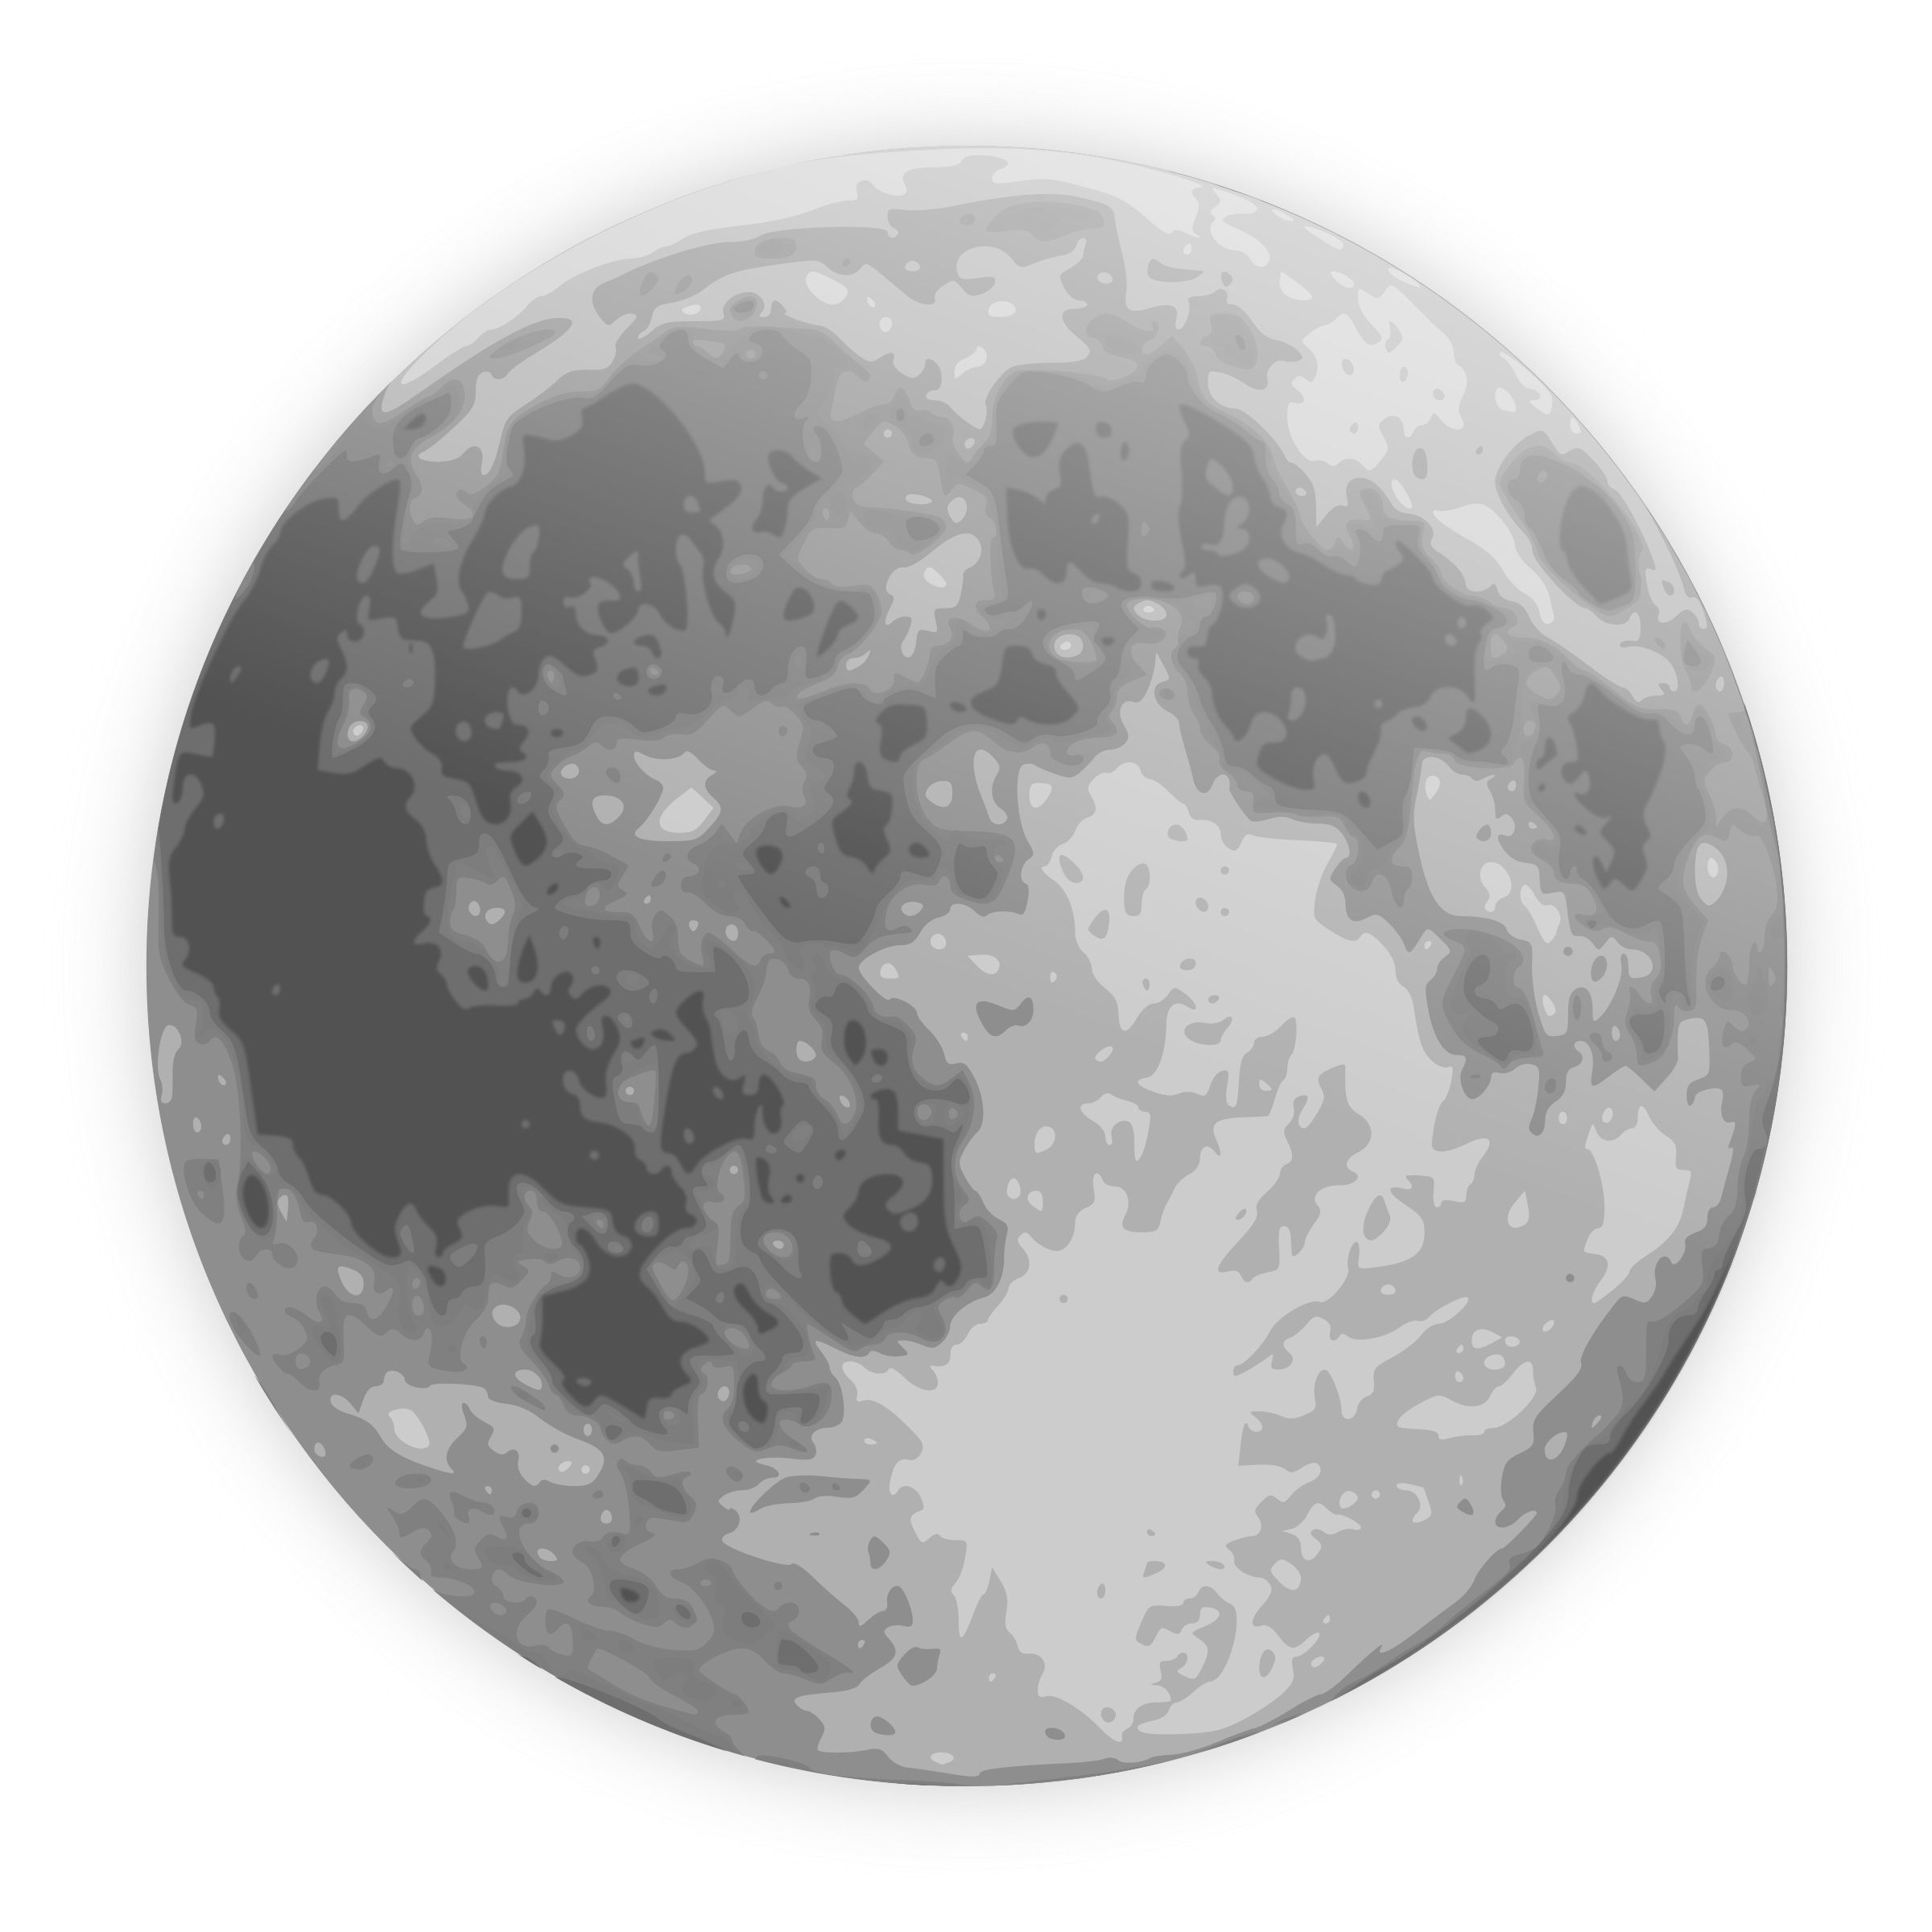 Png images free download. Clipart earth moon